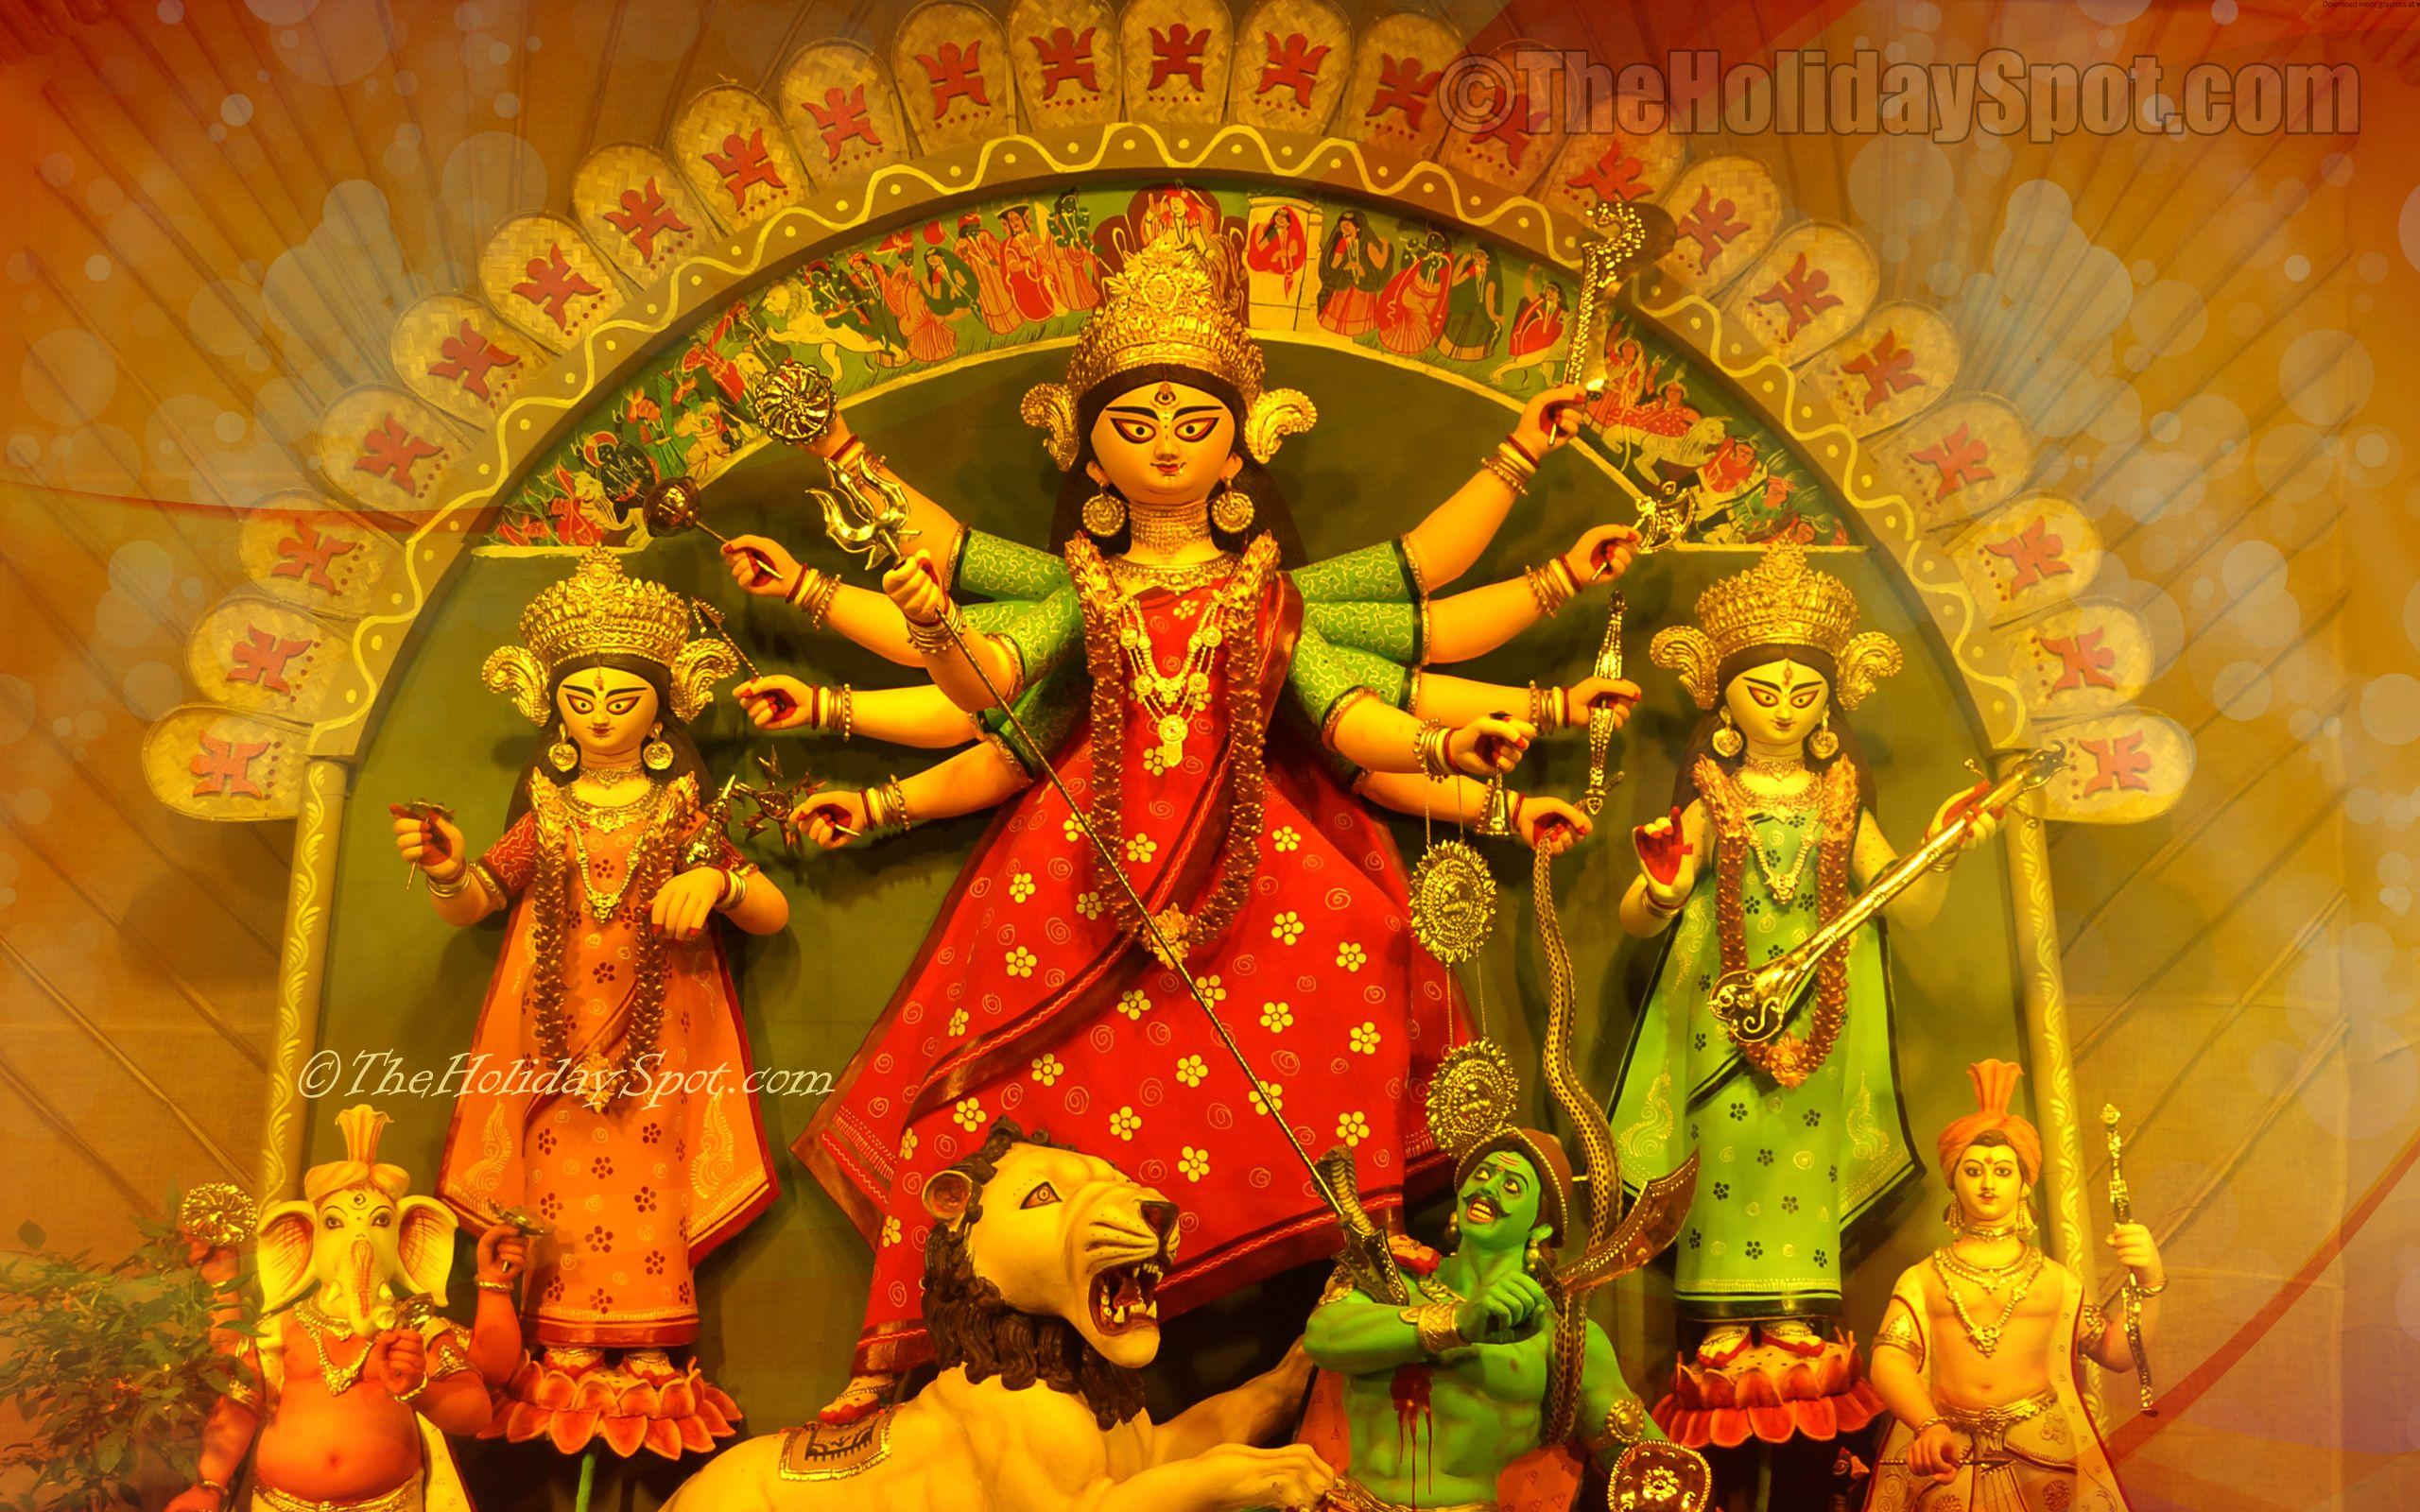 Durga puja wallpapers, its free, download now! | Durga Puja Images ...